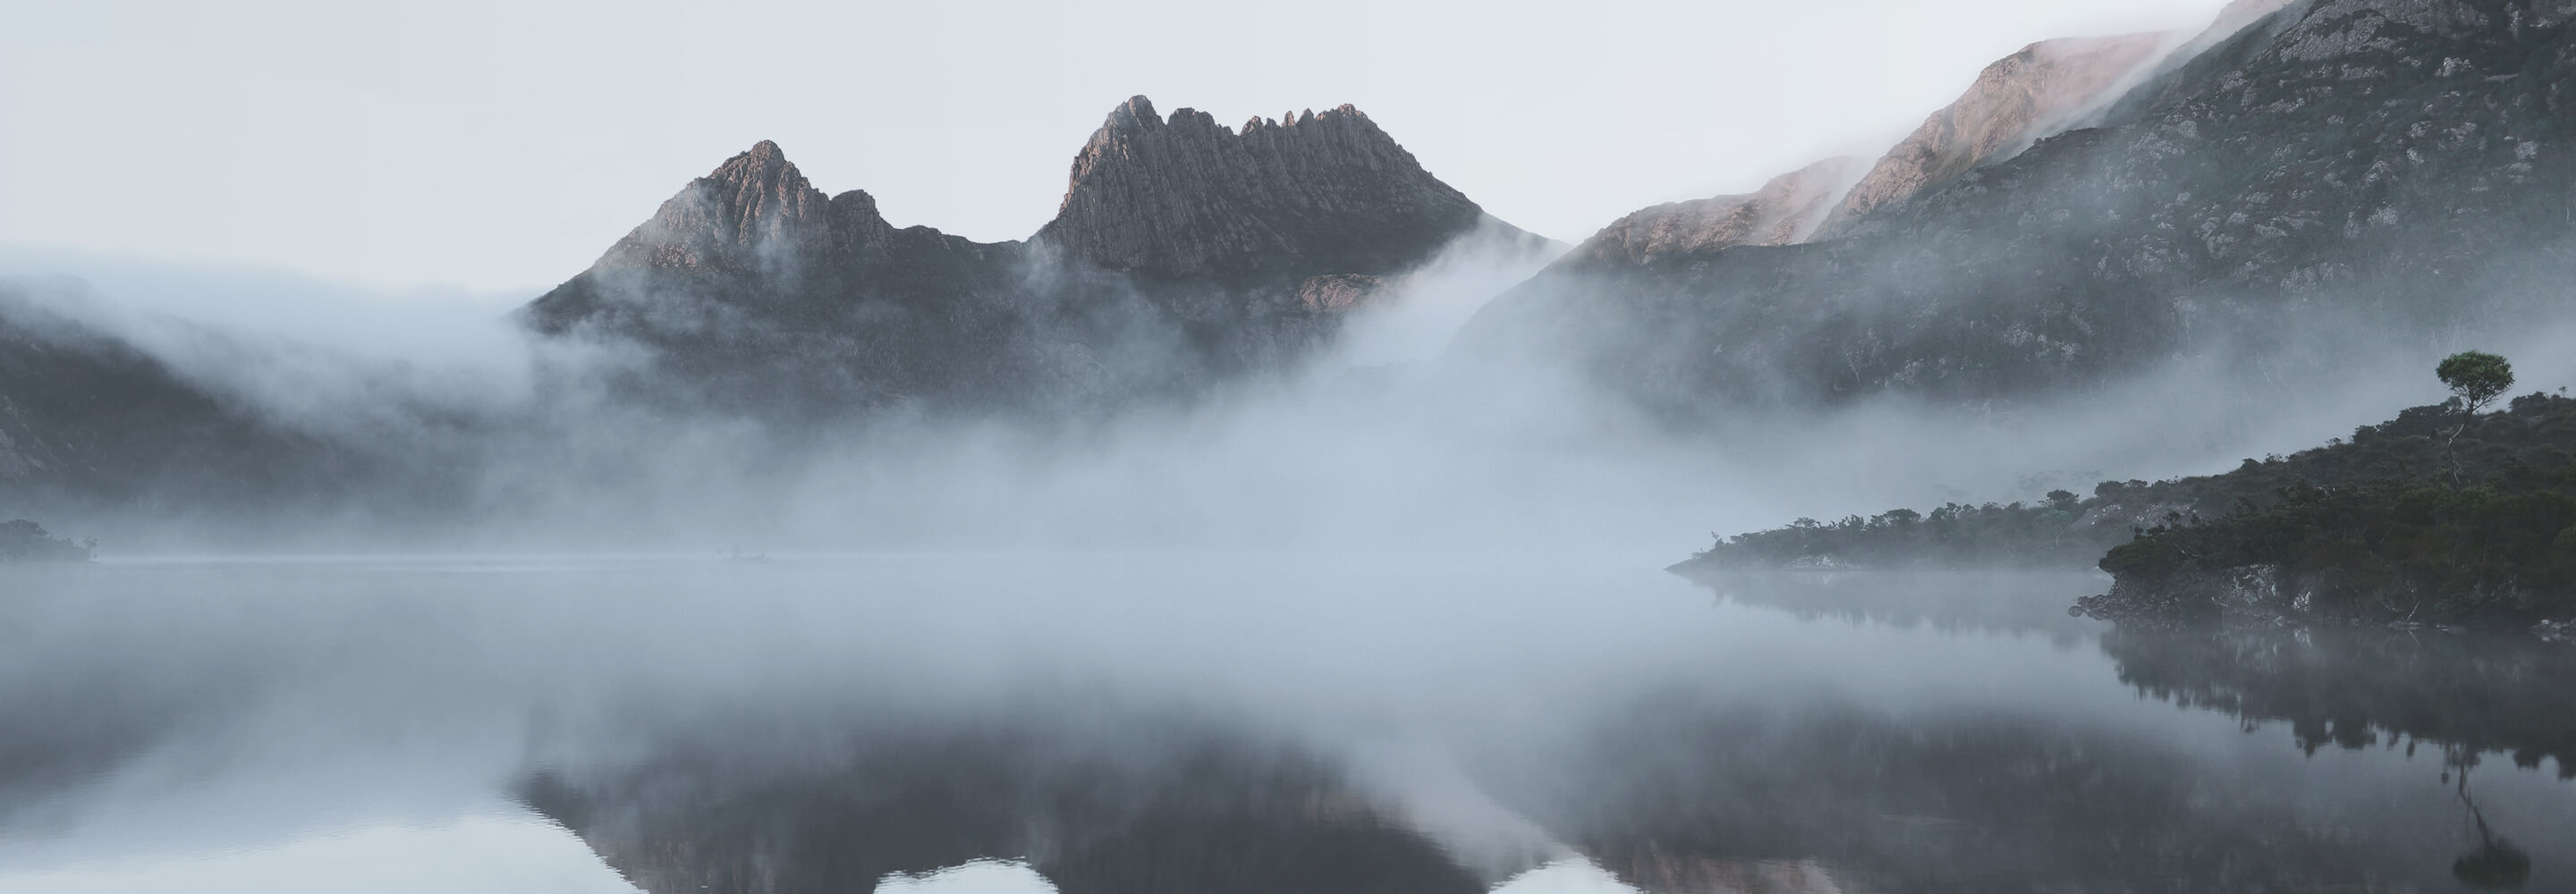 Fog-coming-over-mountains